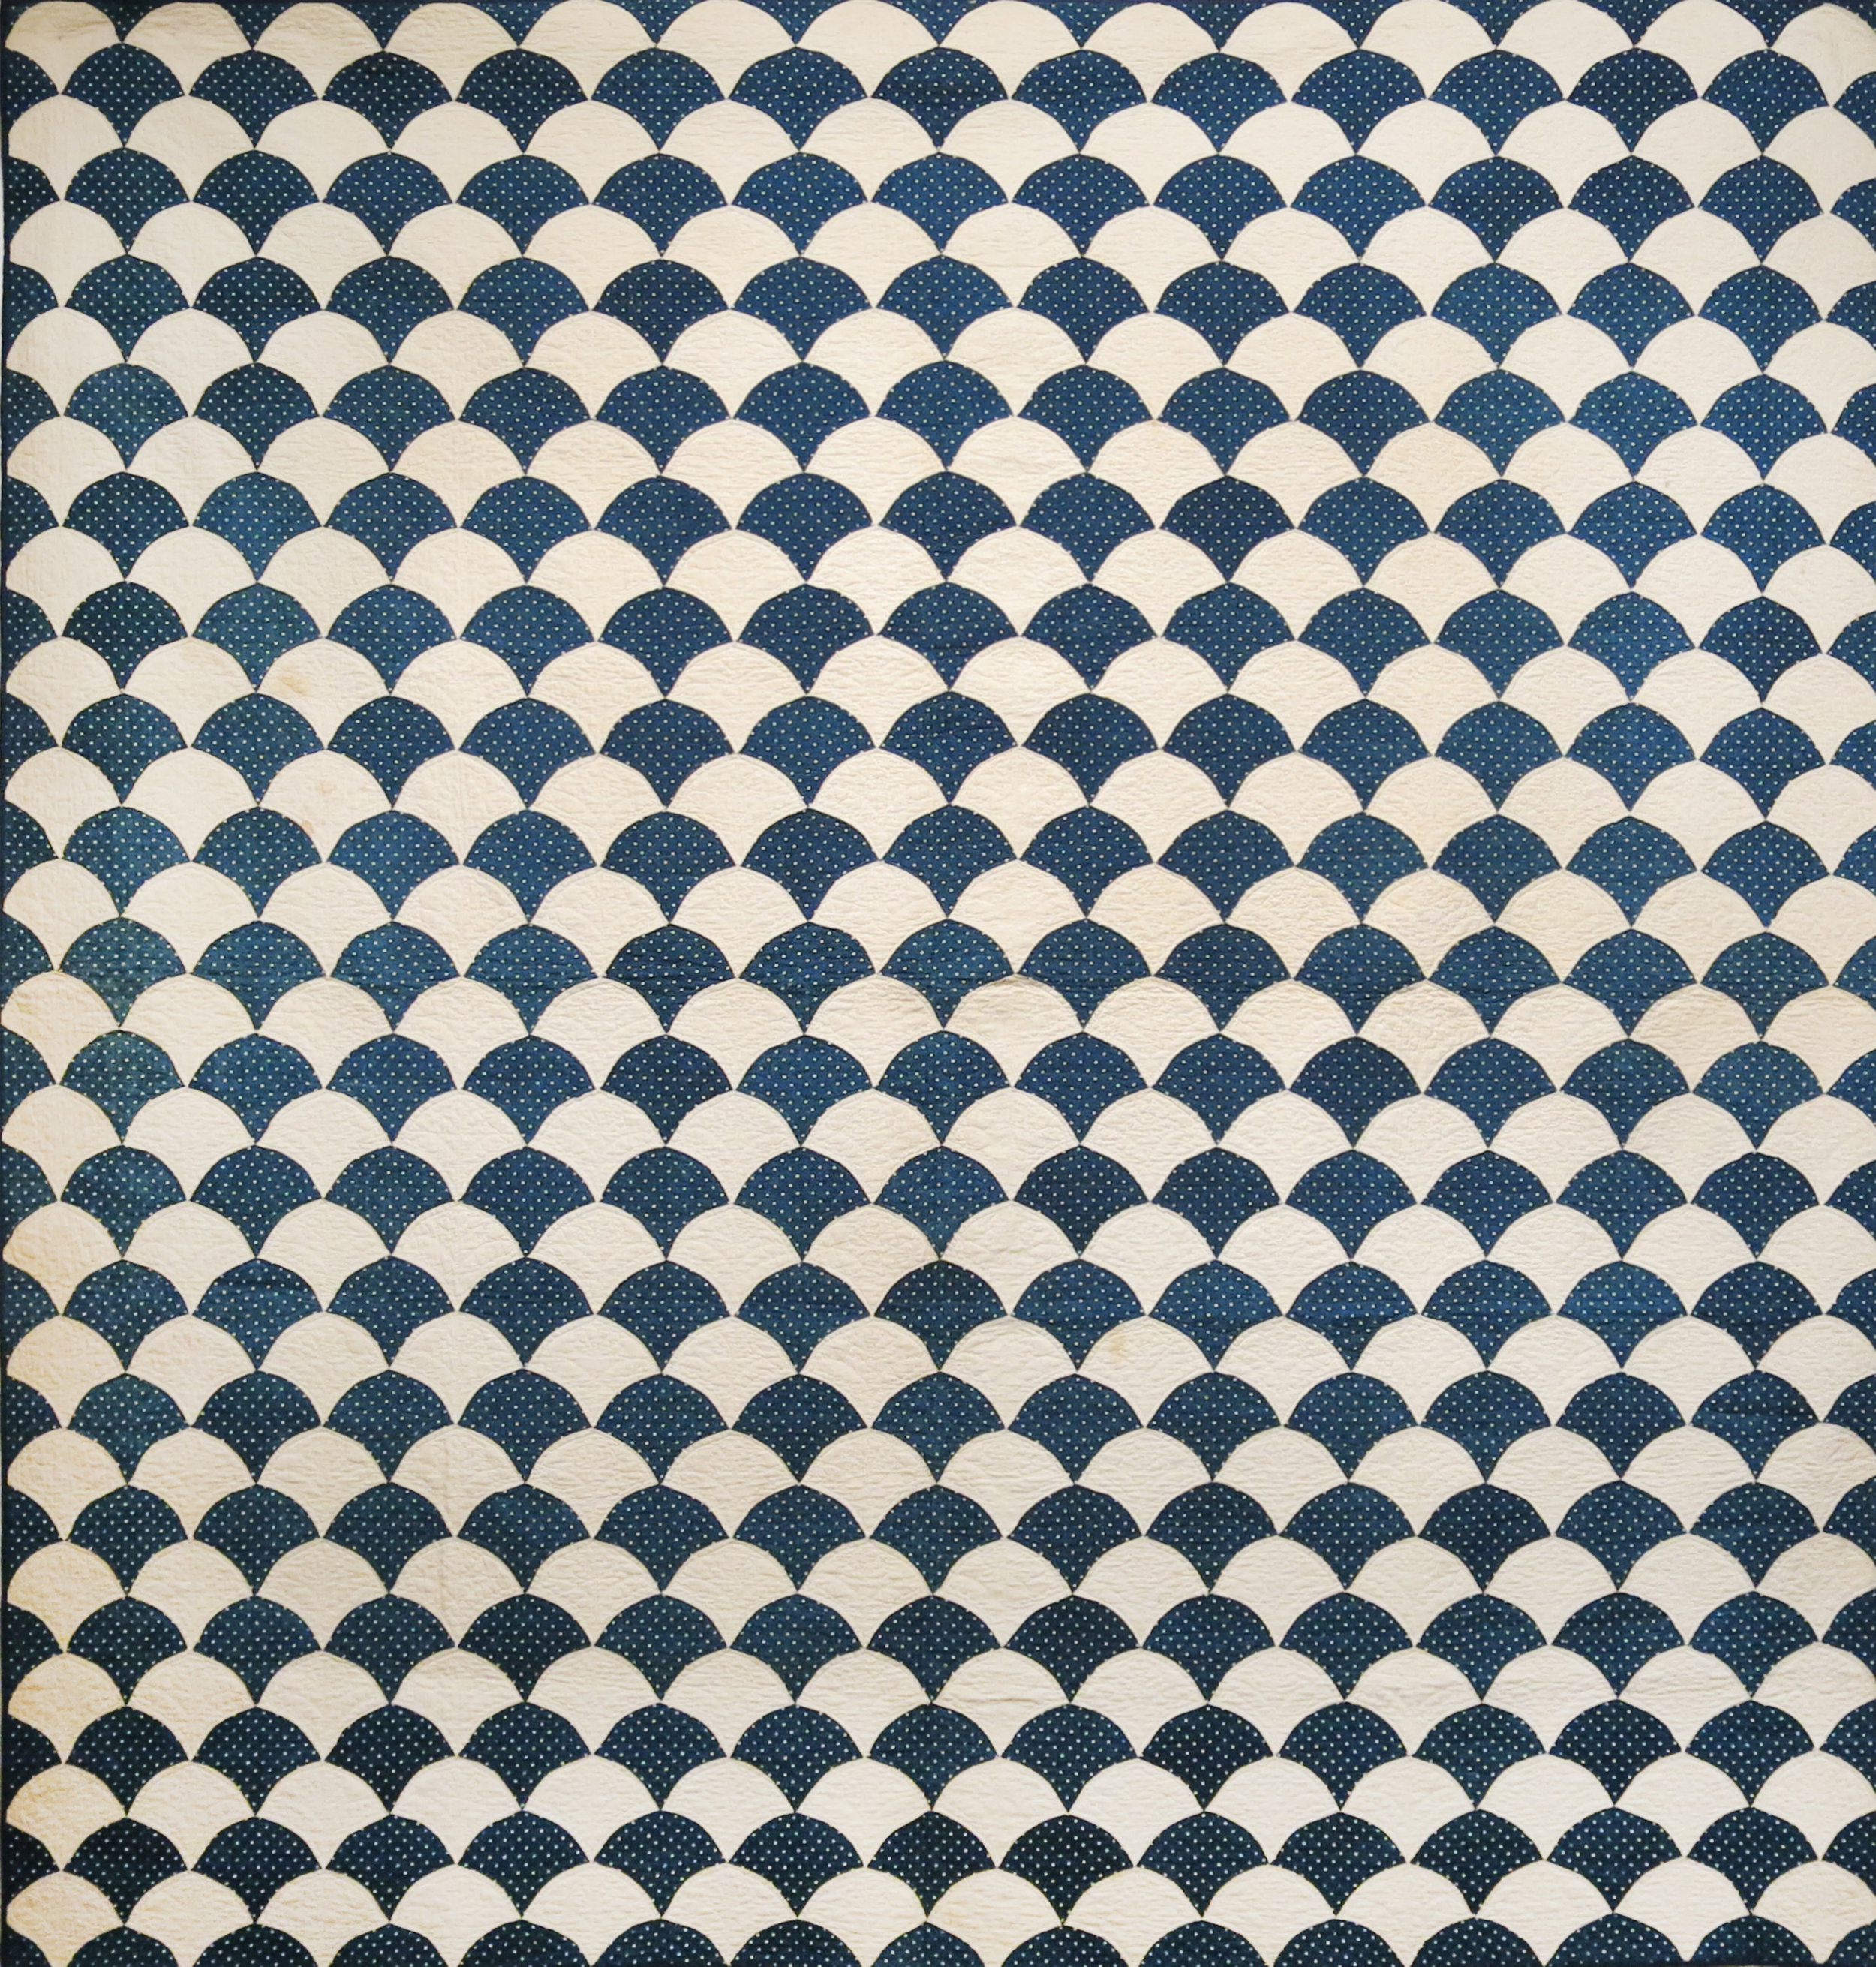 American, Clam Shell Quilt , Third quarter 19th century, cotton, 72h x 76w in.